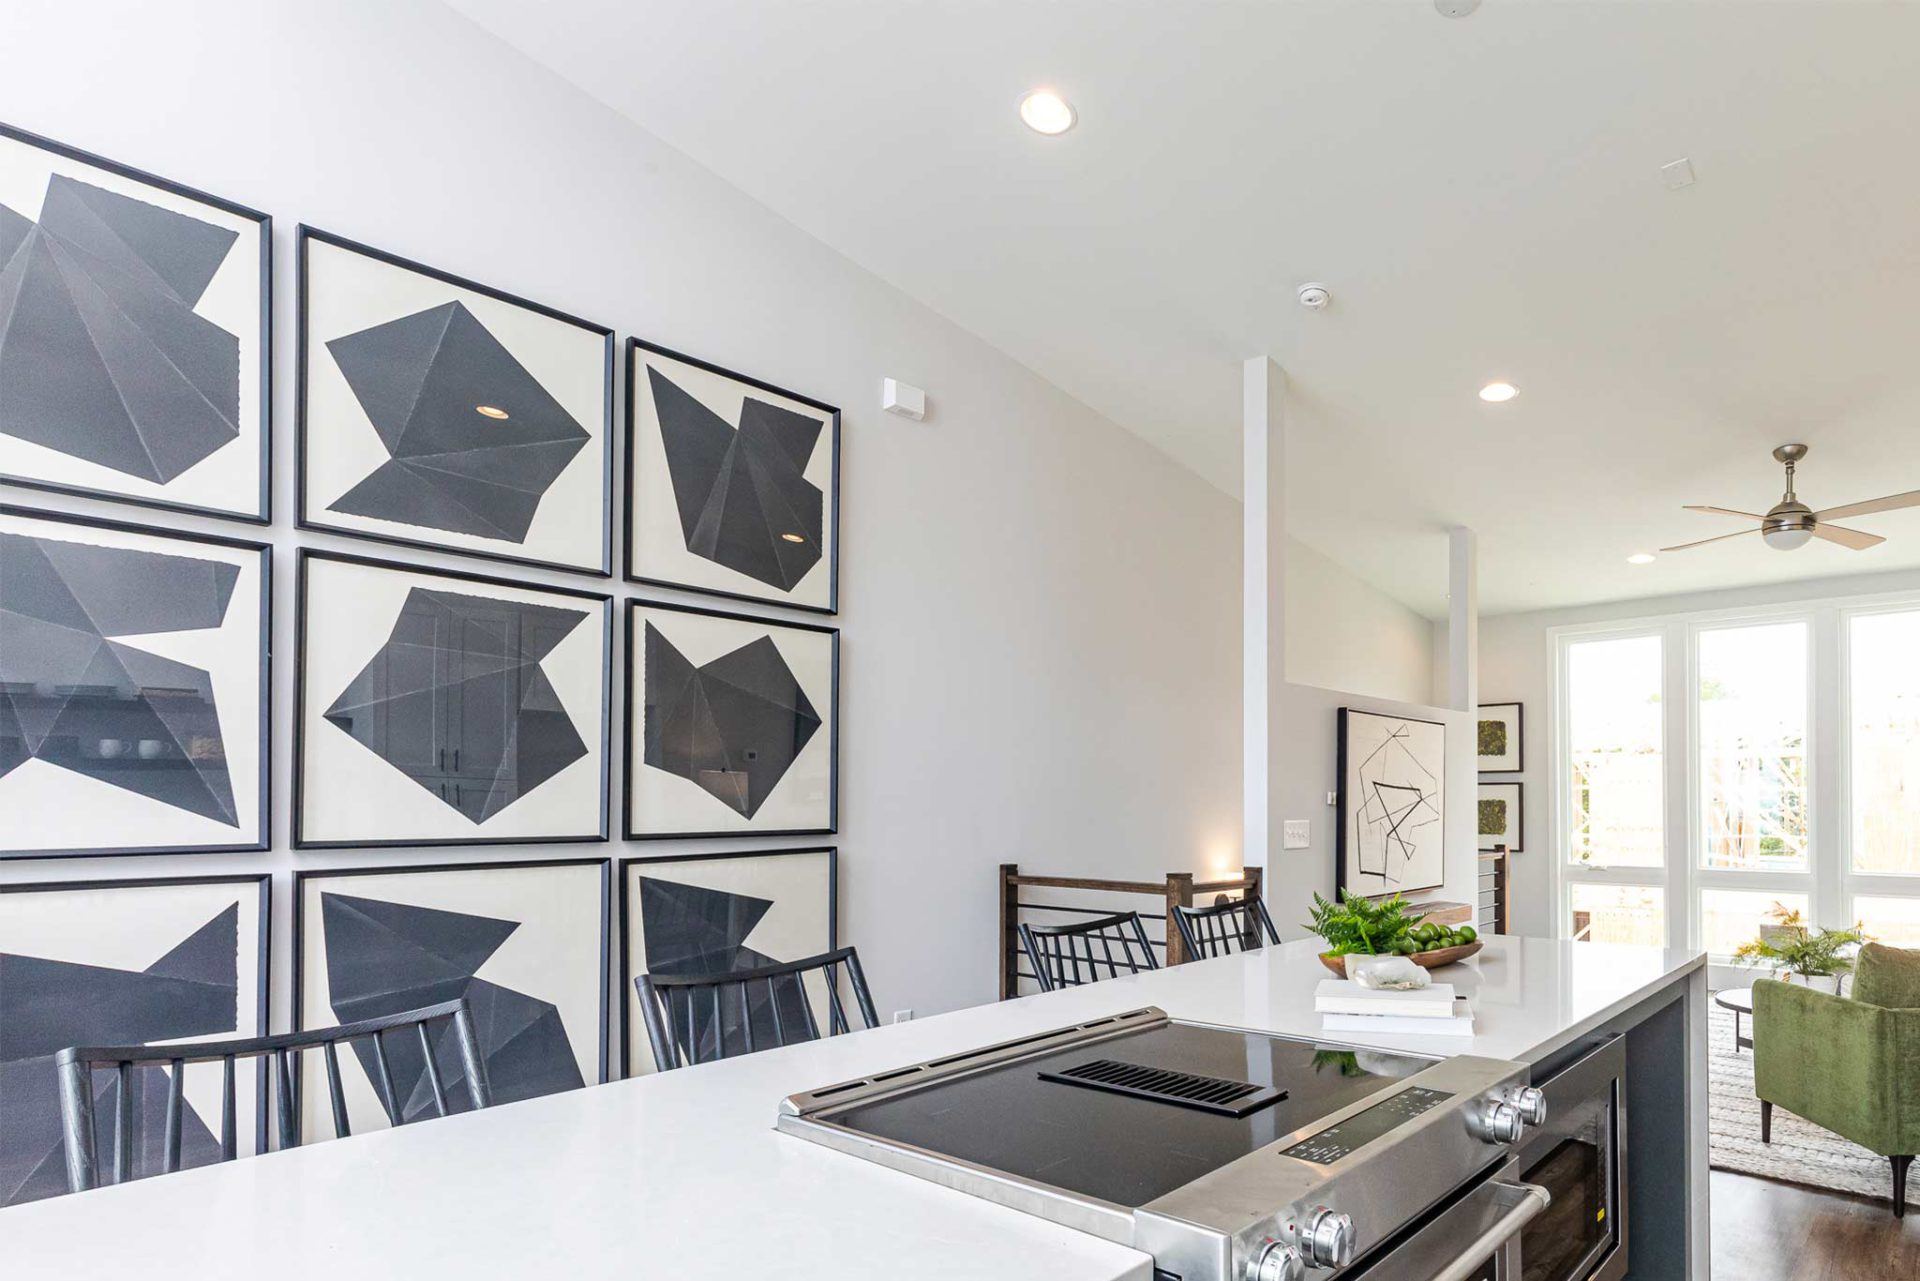 Step Inside Our Designer Townhome at 4Forty4 in Old Fourth Wardimage_block-block_5f623dcb324fd